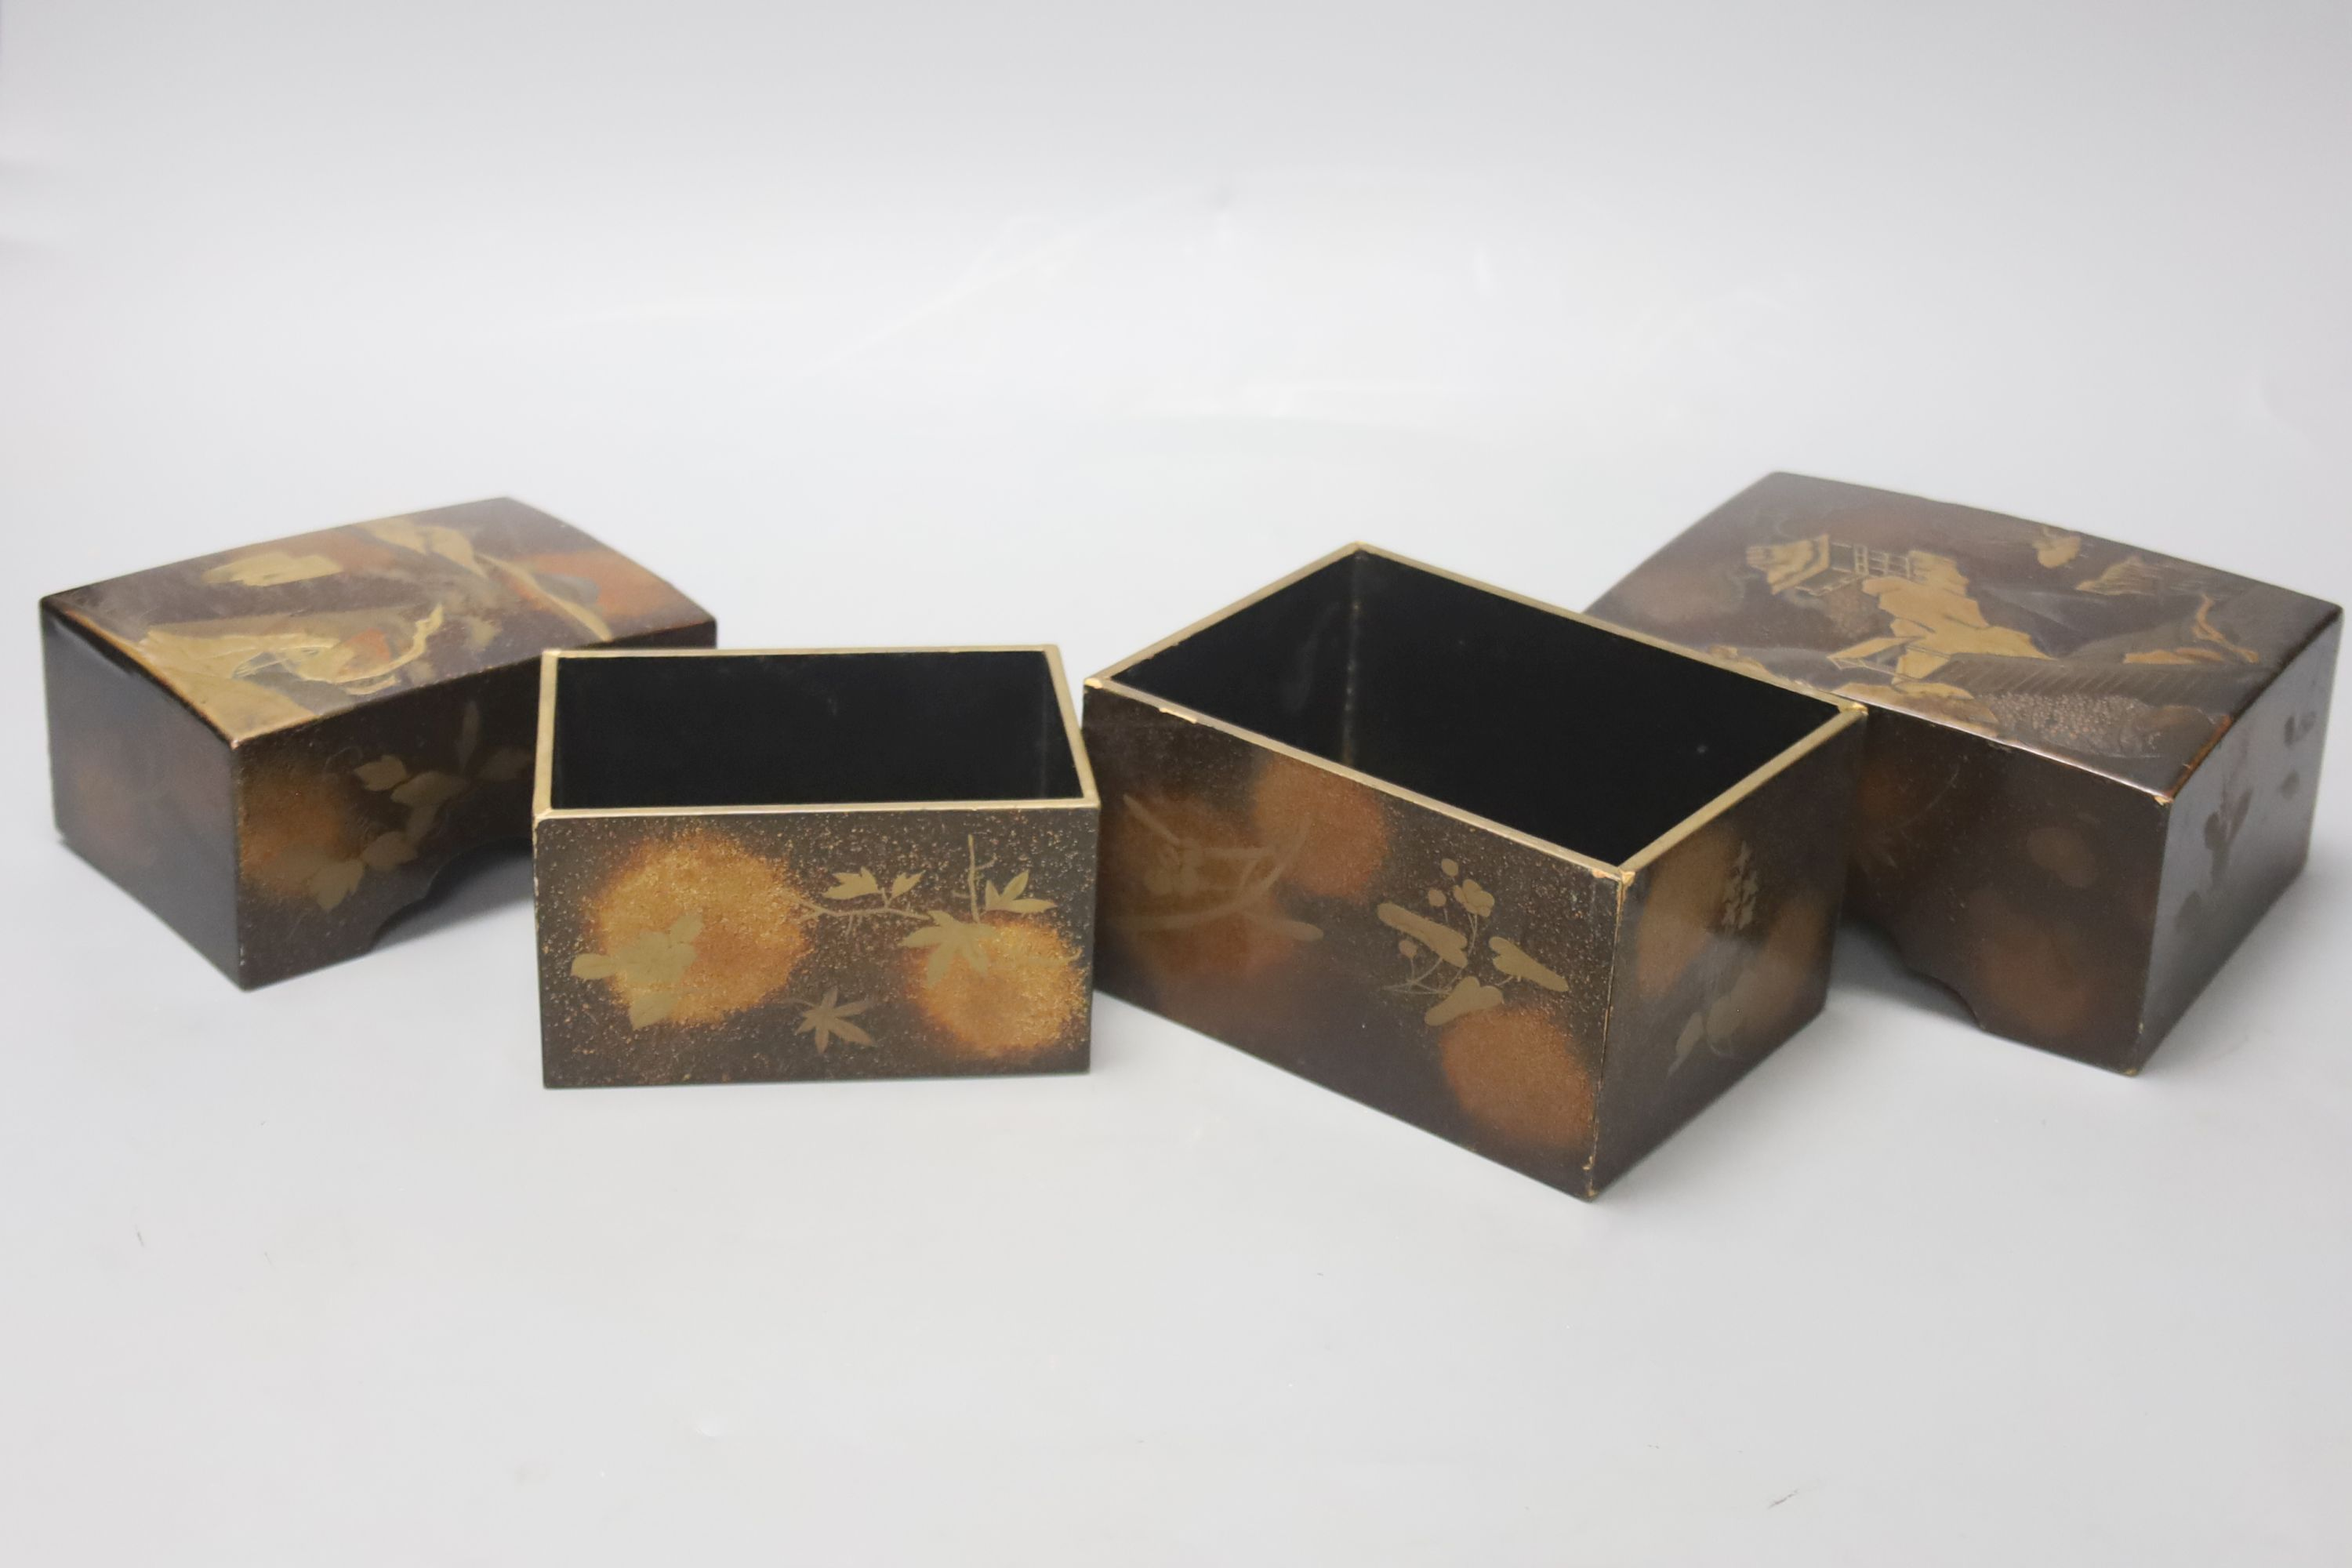 Two Japanese lacquer boxes, 19th century, largest 13.5cm - Image 3 of 4